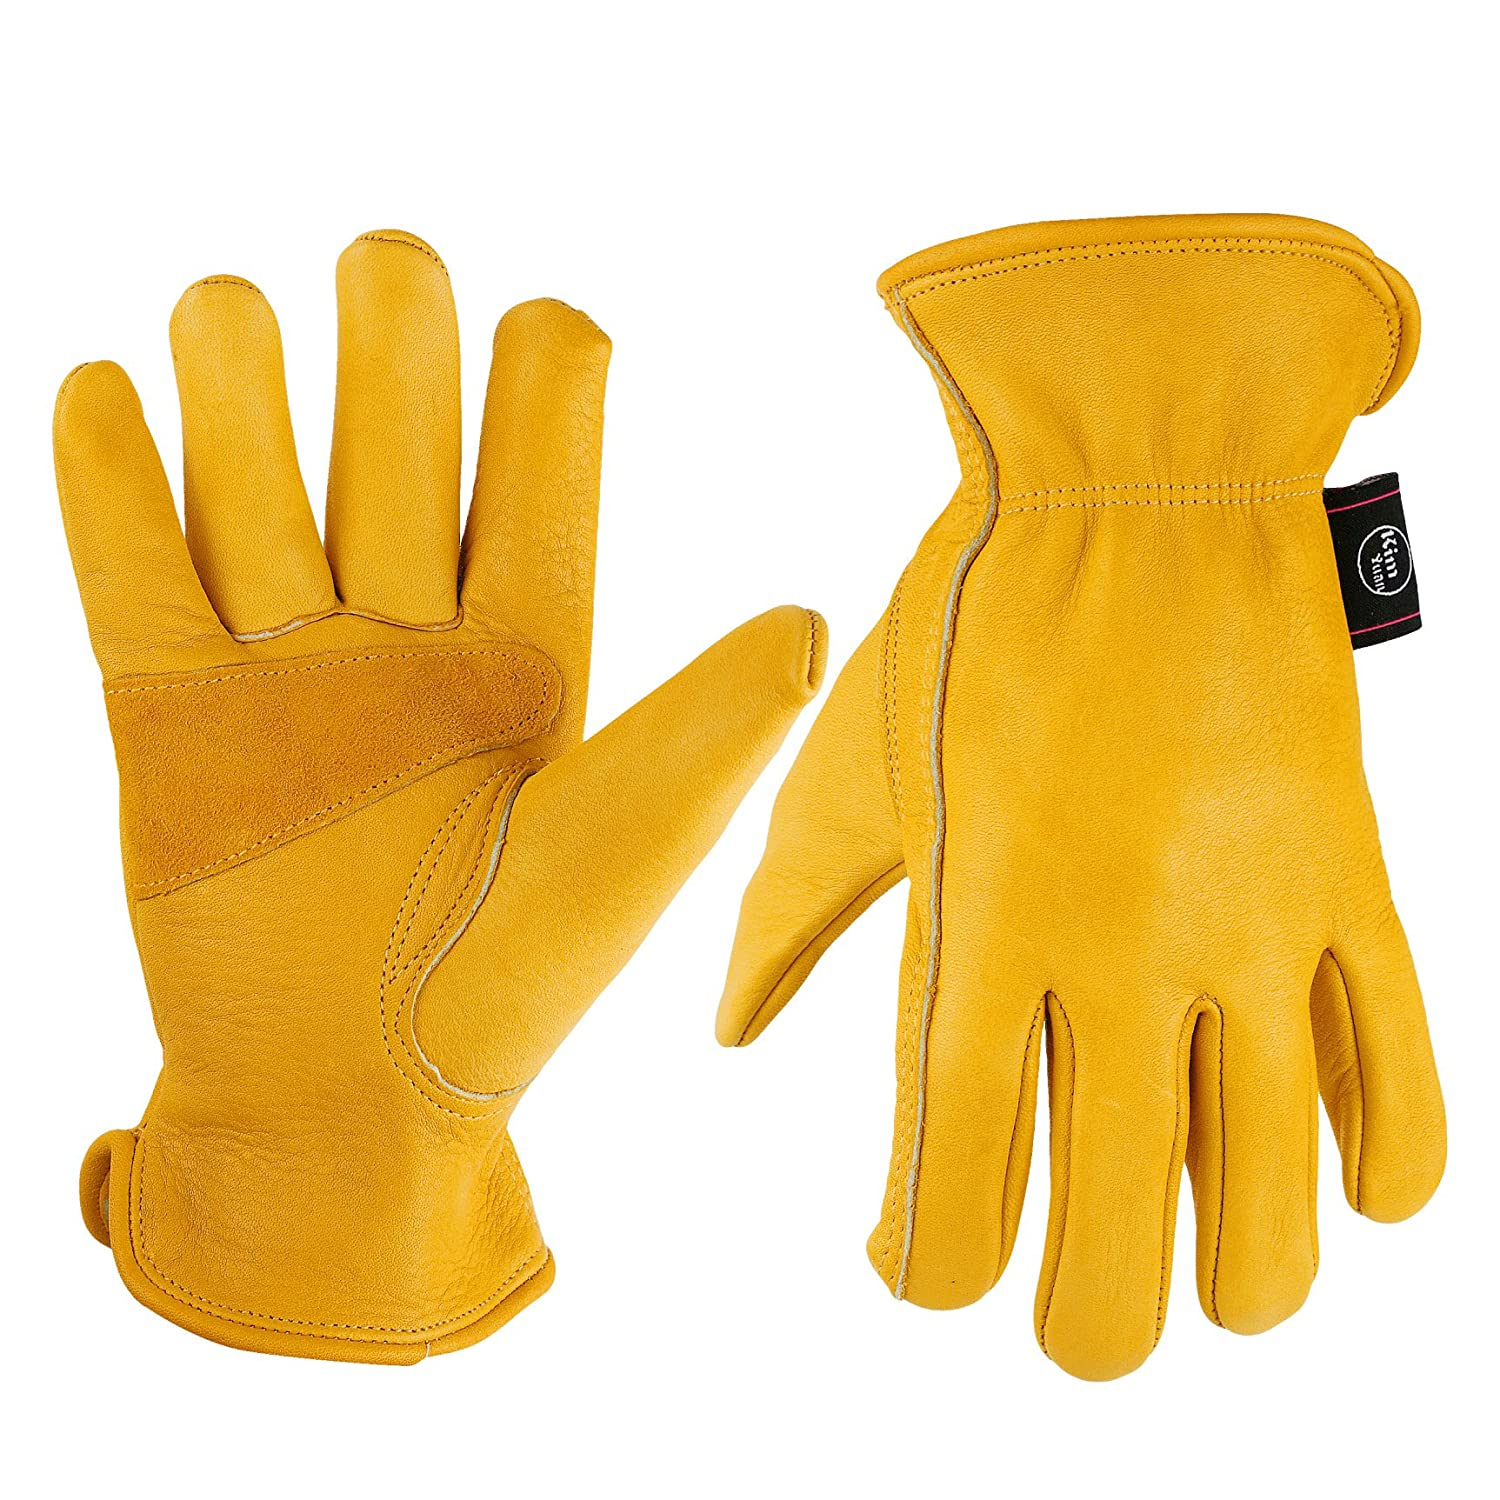 KIM YUAN Leather Work Gloves for Gardening/Cutting/Construction/Motorcycle, Men & Women, Elastic Wrist with Palm, Medium